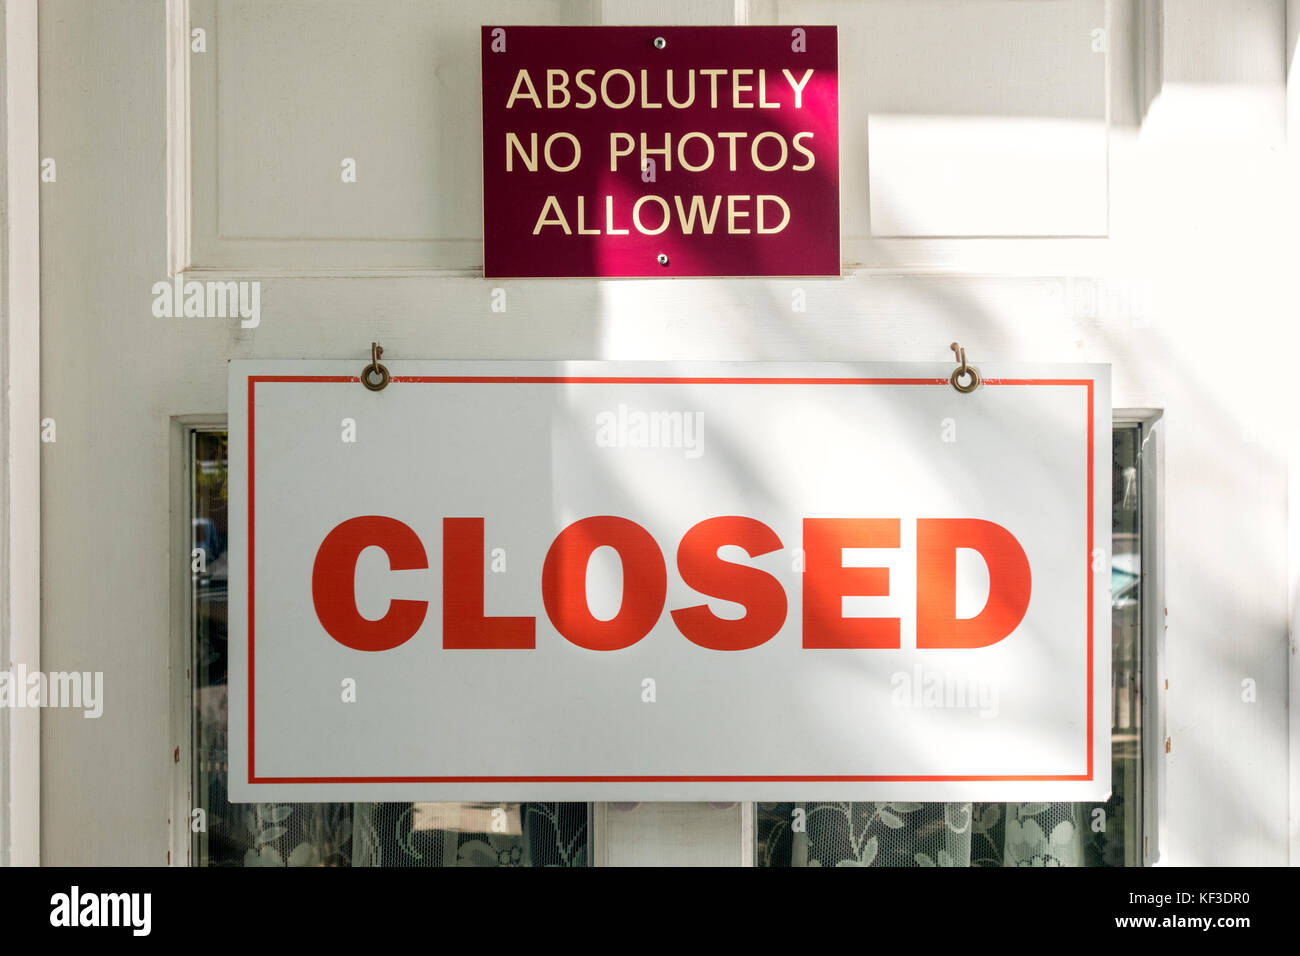 Sign Absolutely no photos allowed on closed museum door with sign closed. - Stock Image